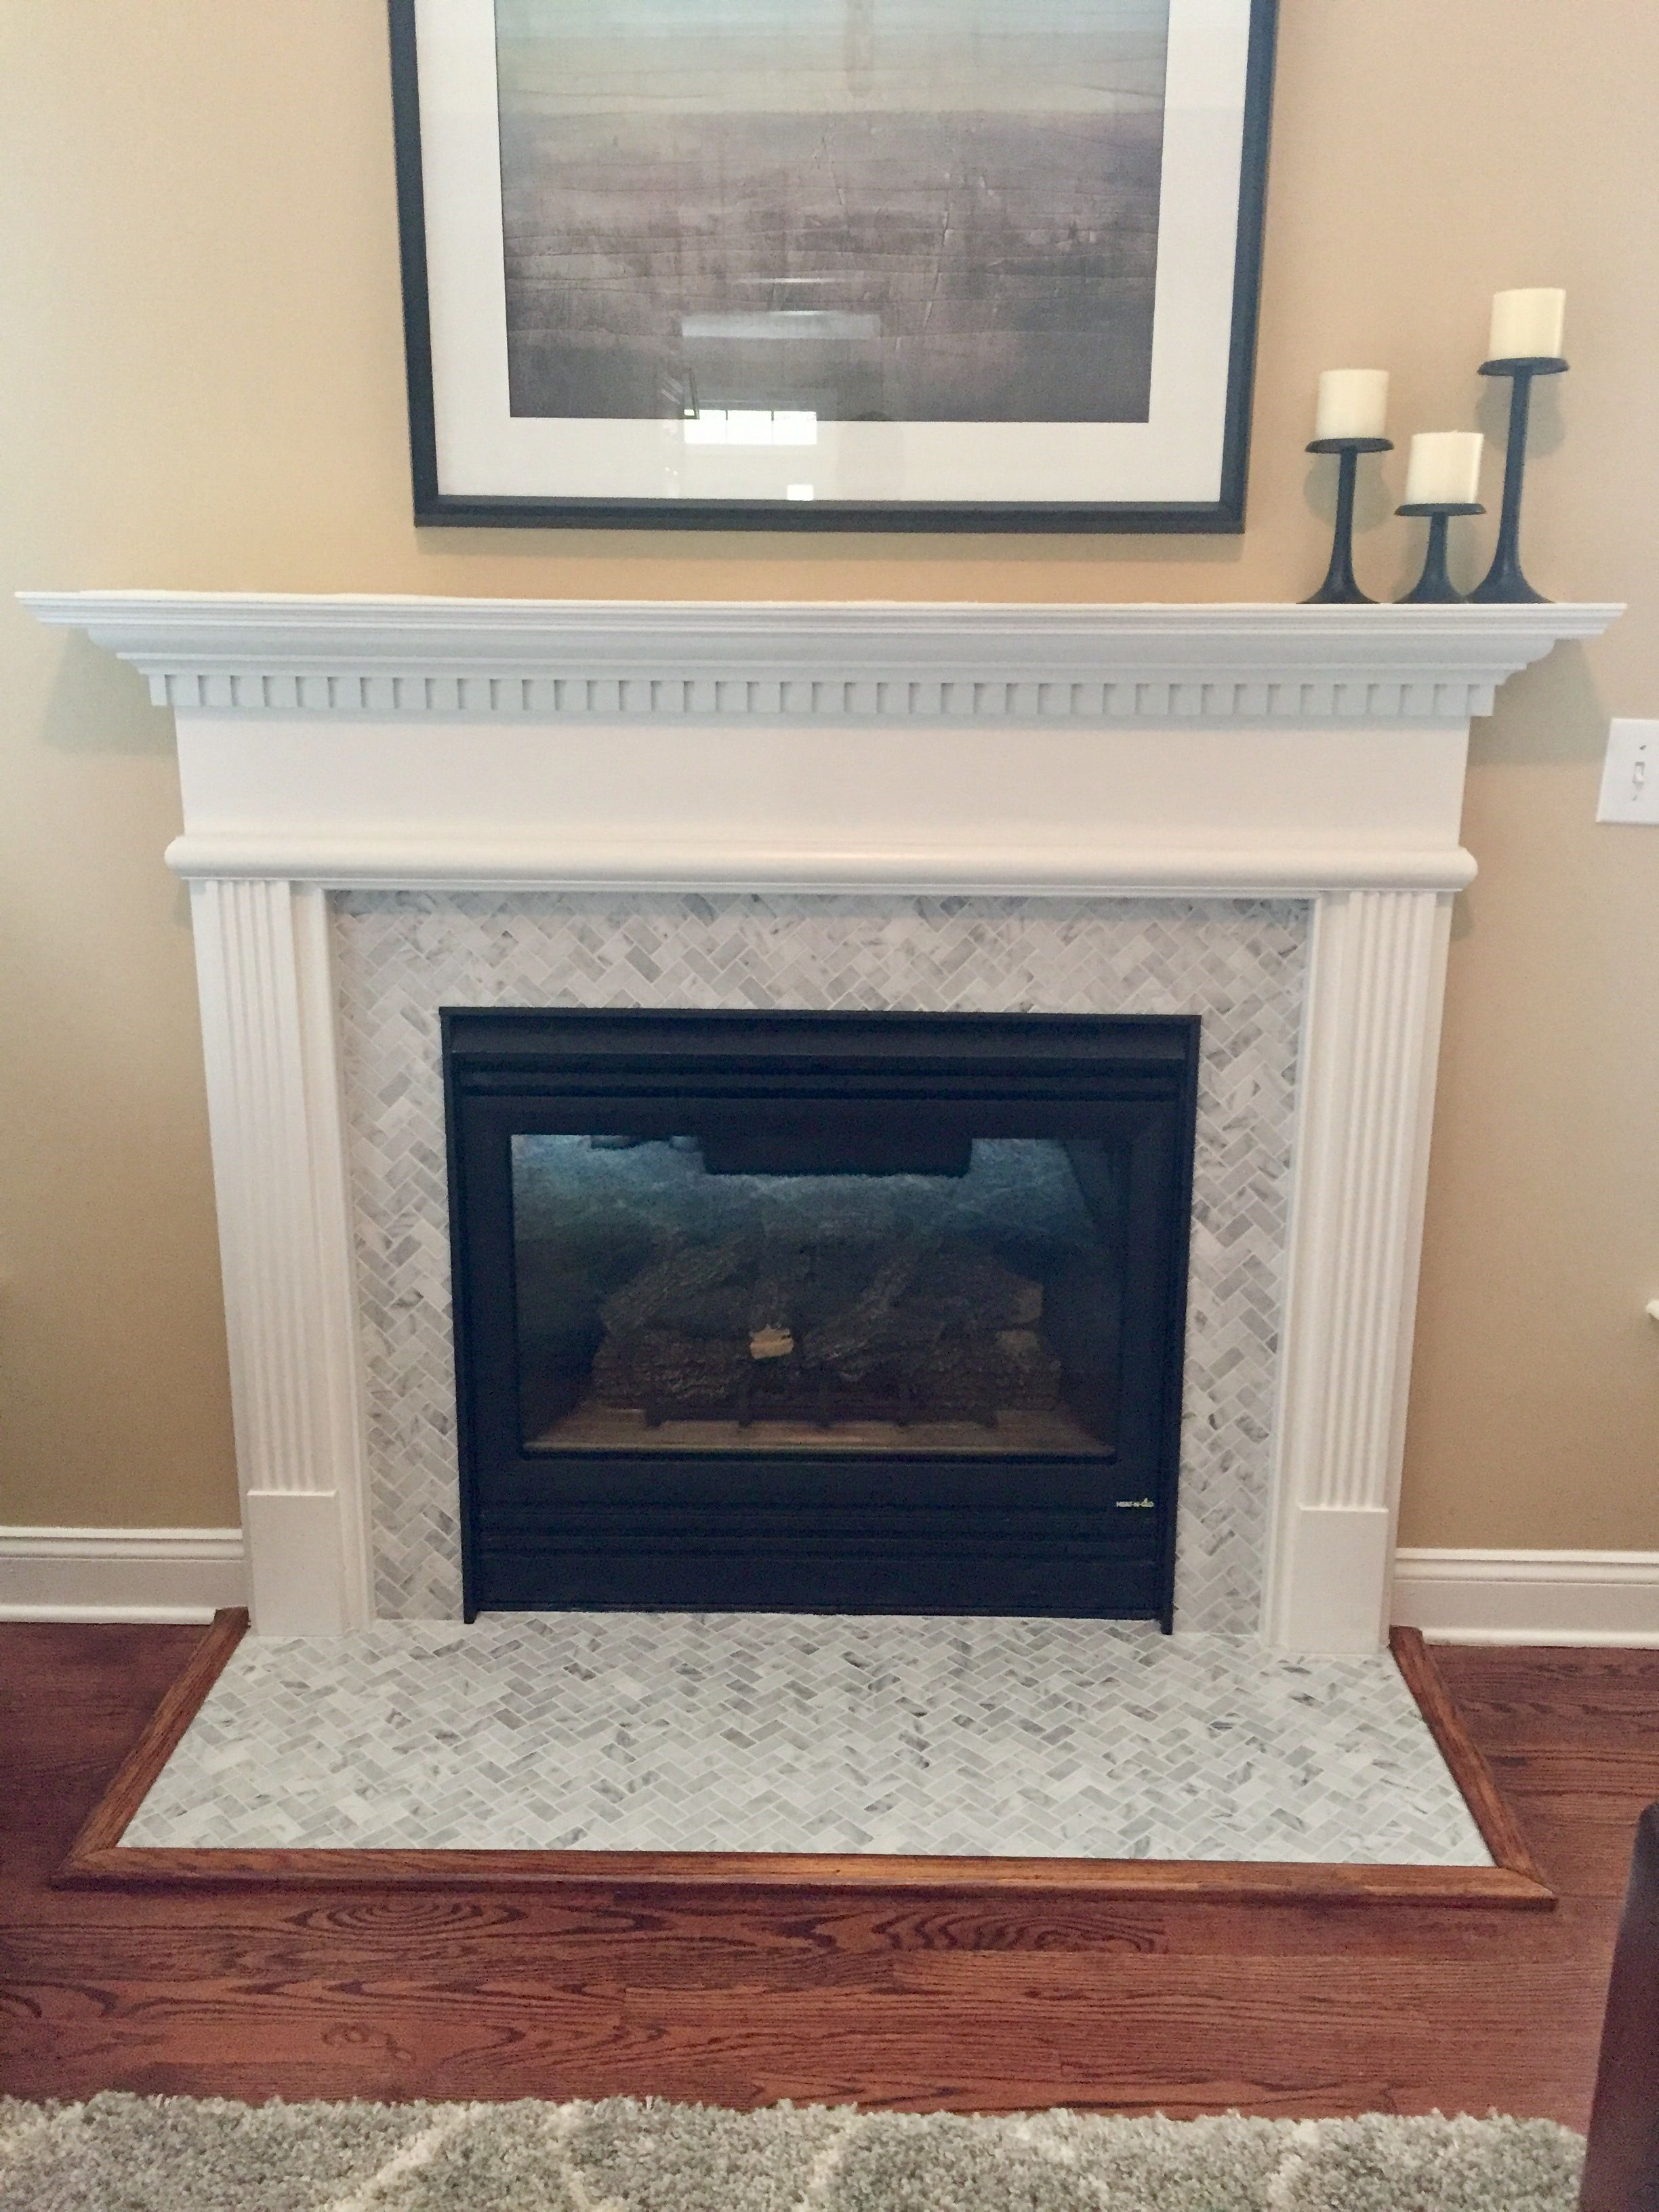 successful working design hearth unique led to before after approach projects our renovation closely countless has with customers remodeling for gta care manor fireplace centre fireplaces and craftsmanship